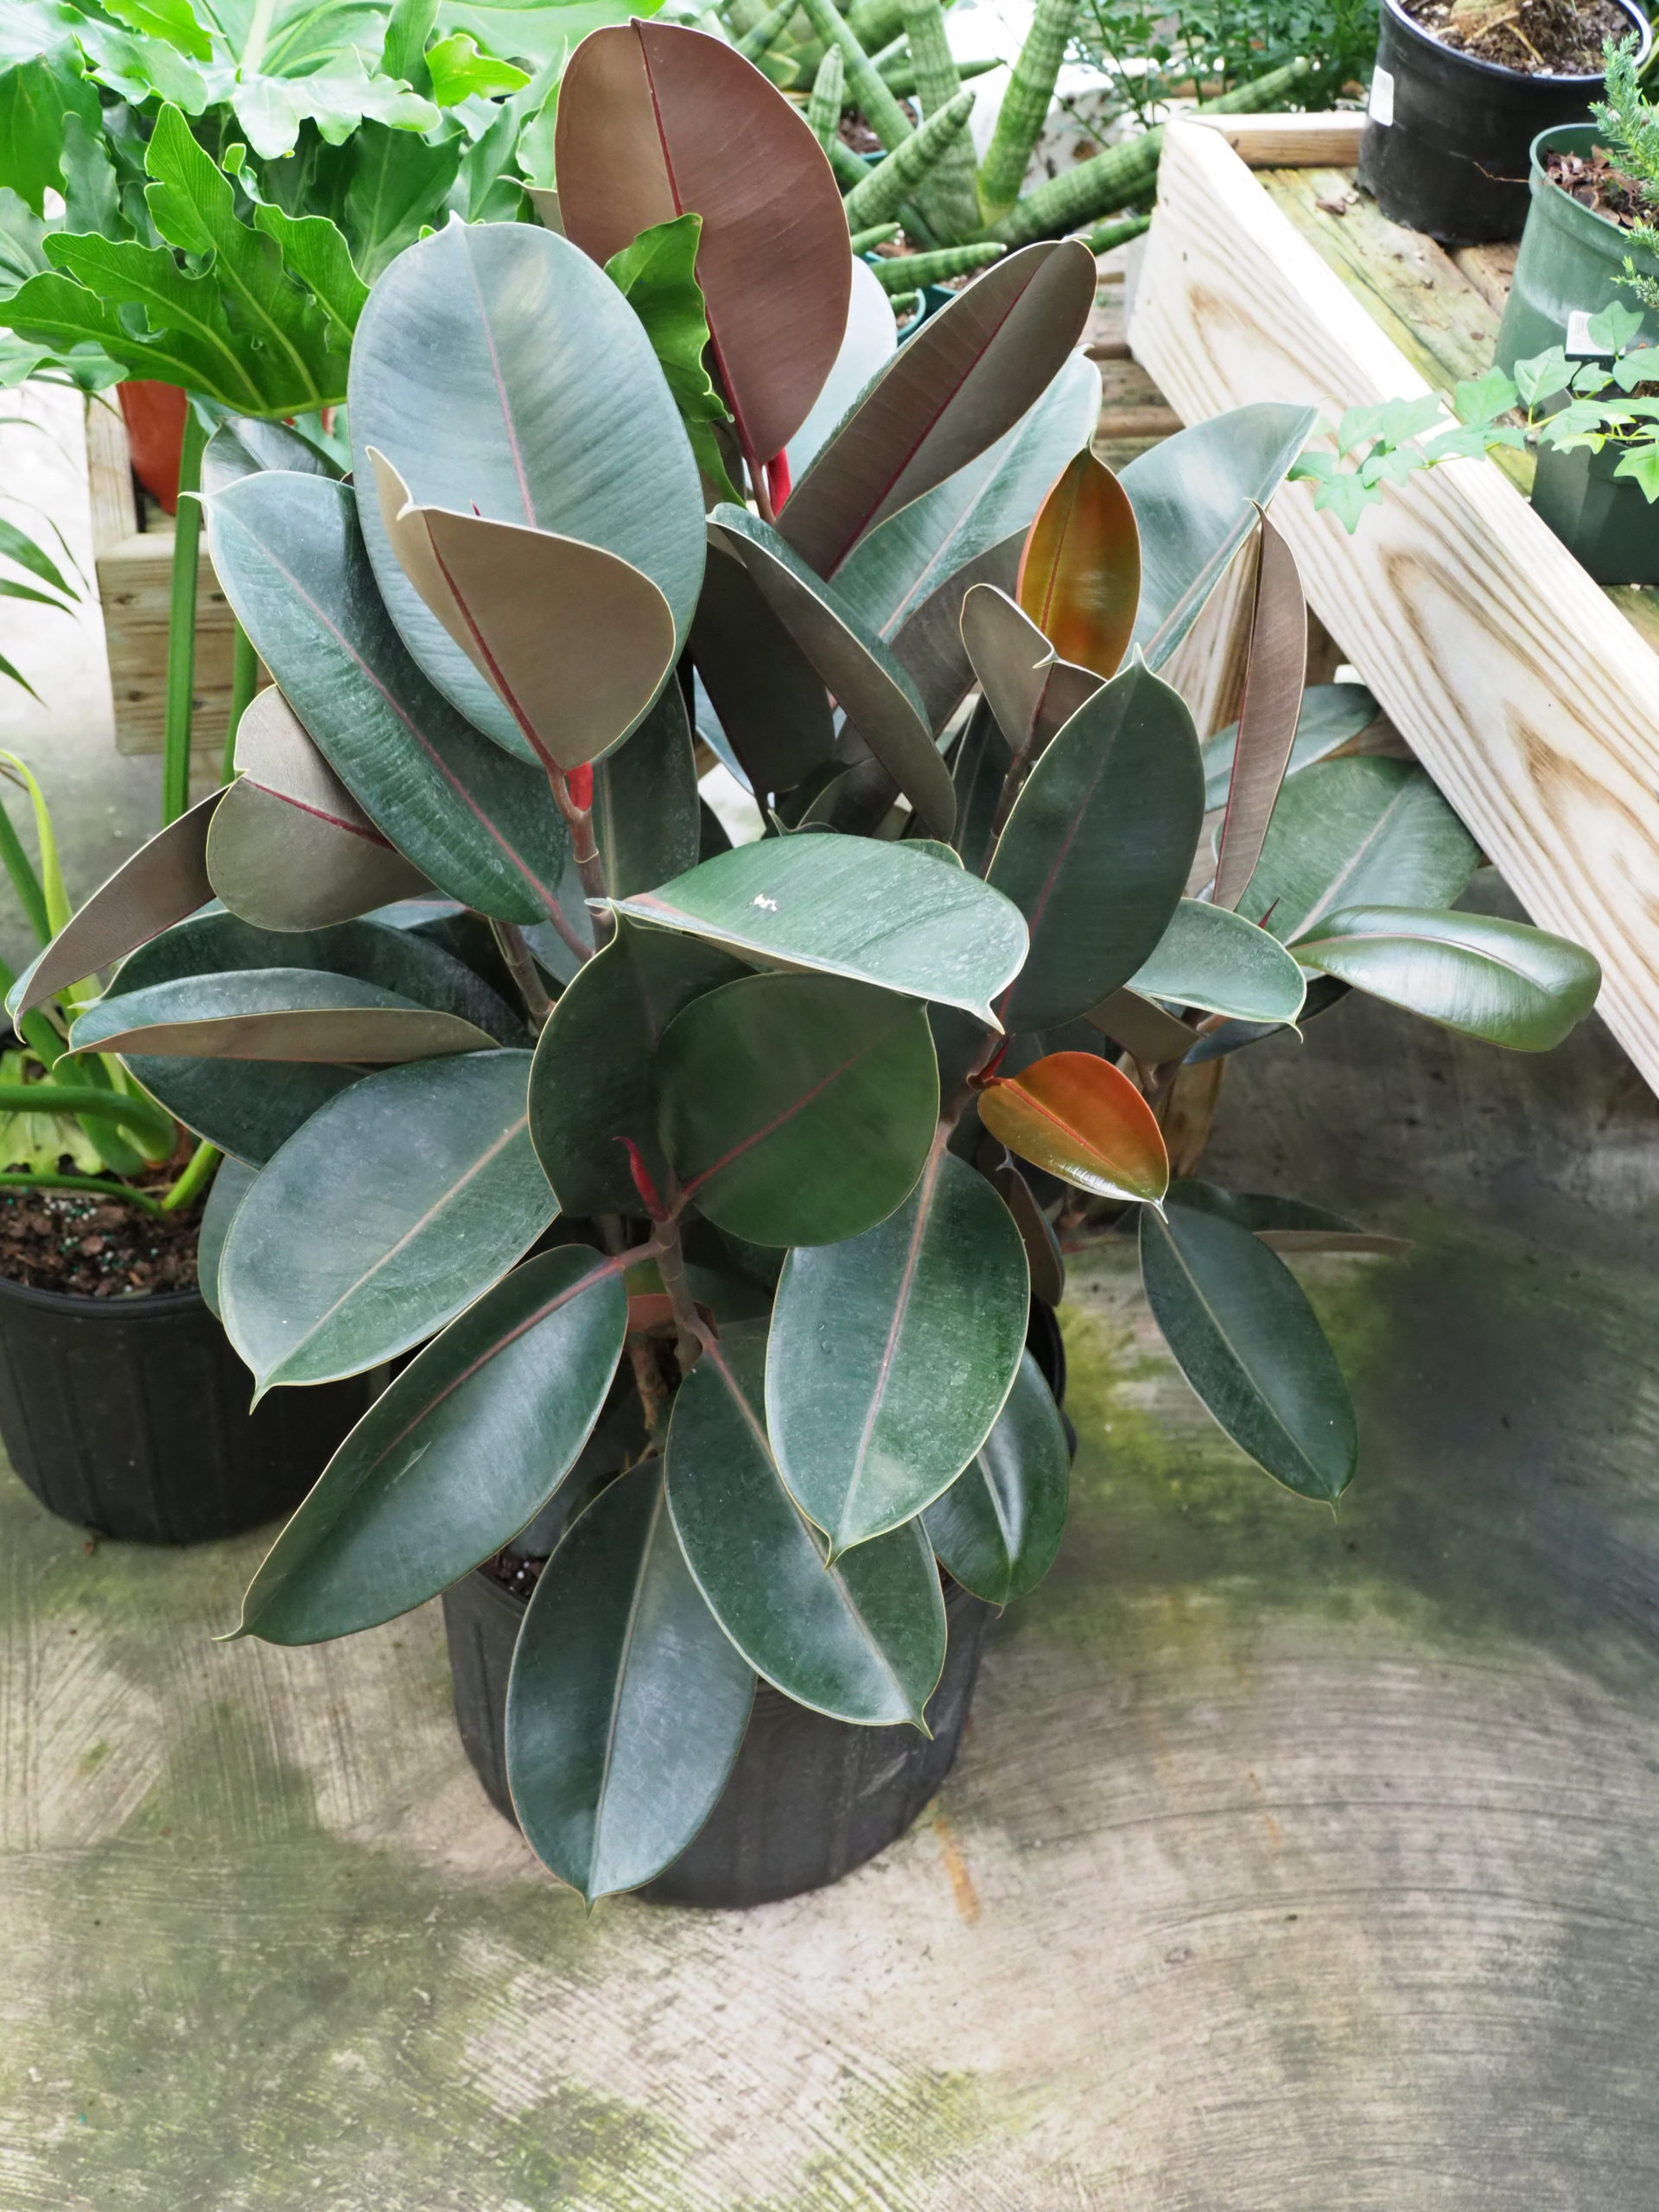 Among the Ficus, the decora varieties make good, low-maintenance houseplants. Some varieties have dark to almost black foliage while others can have hints of red, green and white. Fast growing but easily pruned to maintain size and shape.